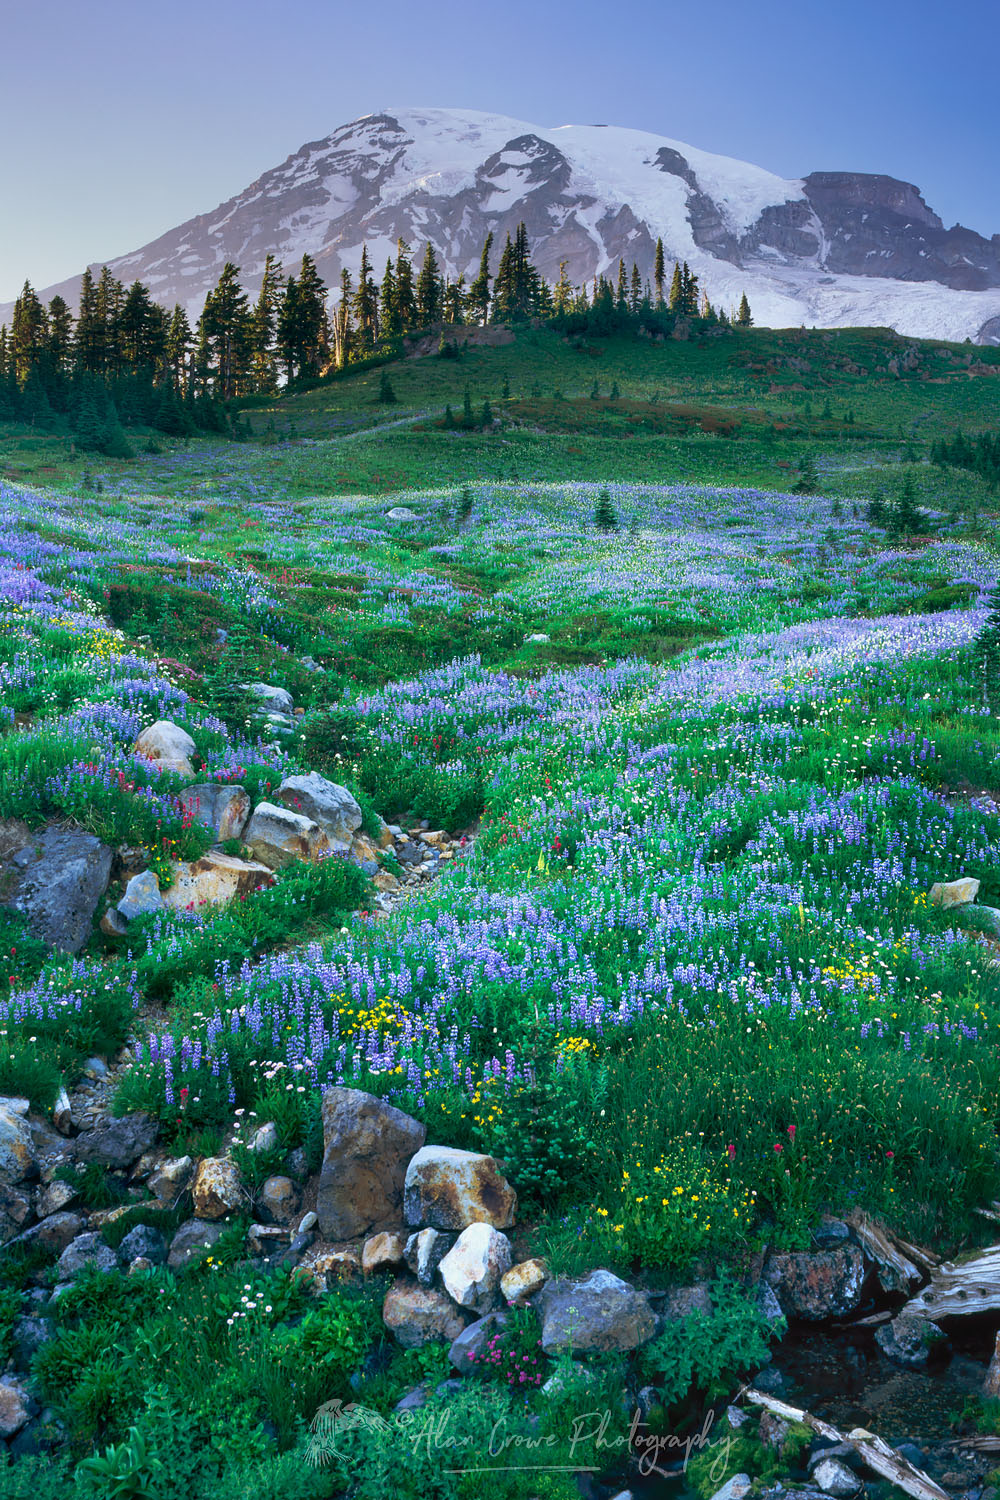 Mount Rainier, Paradise Meadows Wildflowers